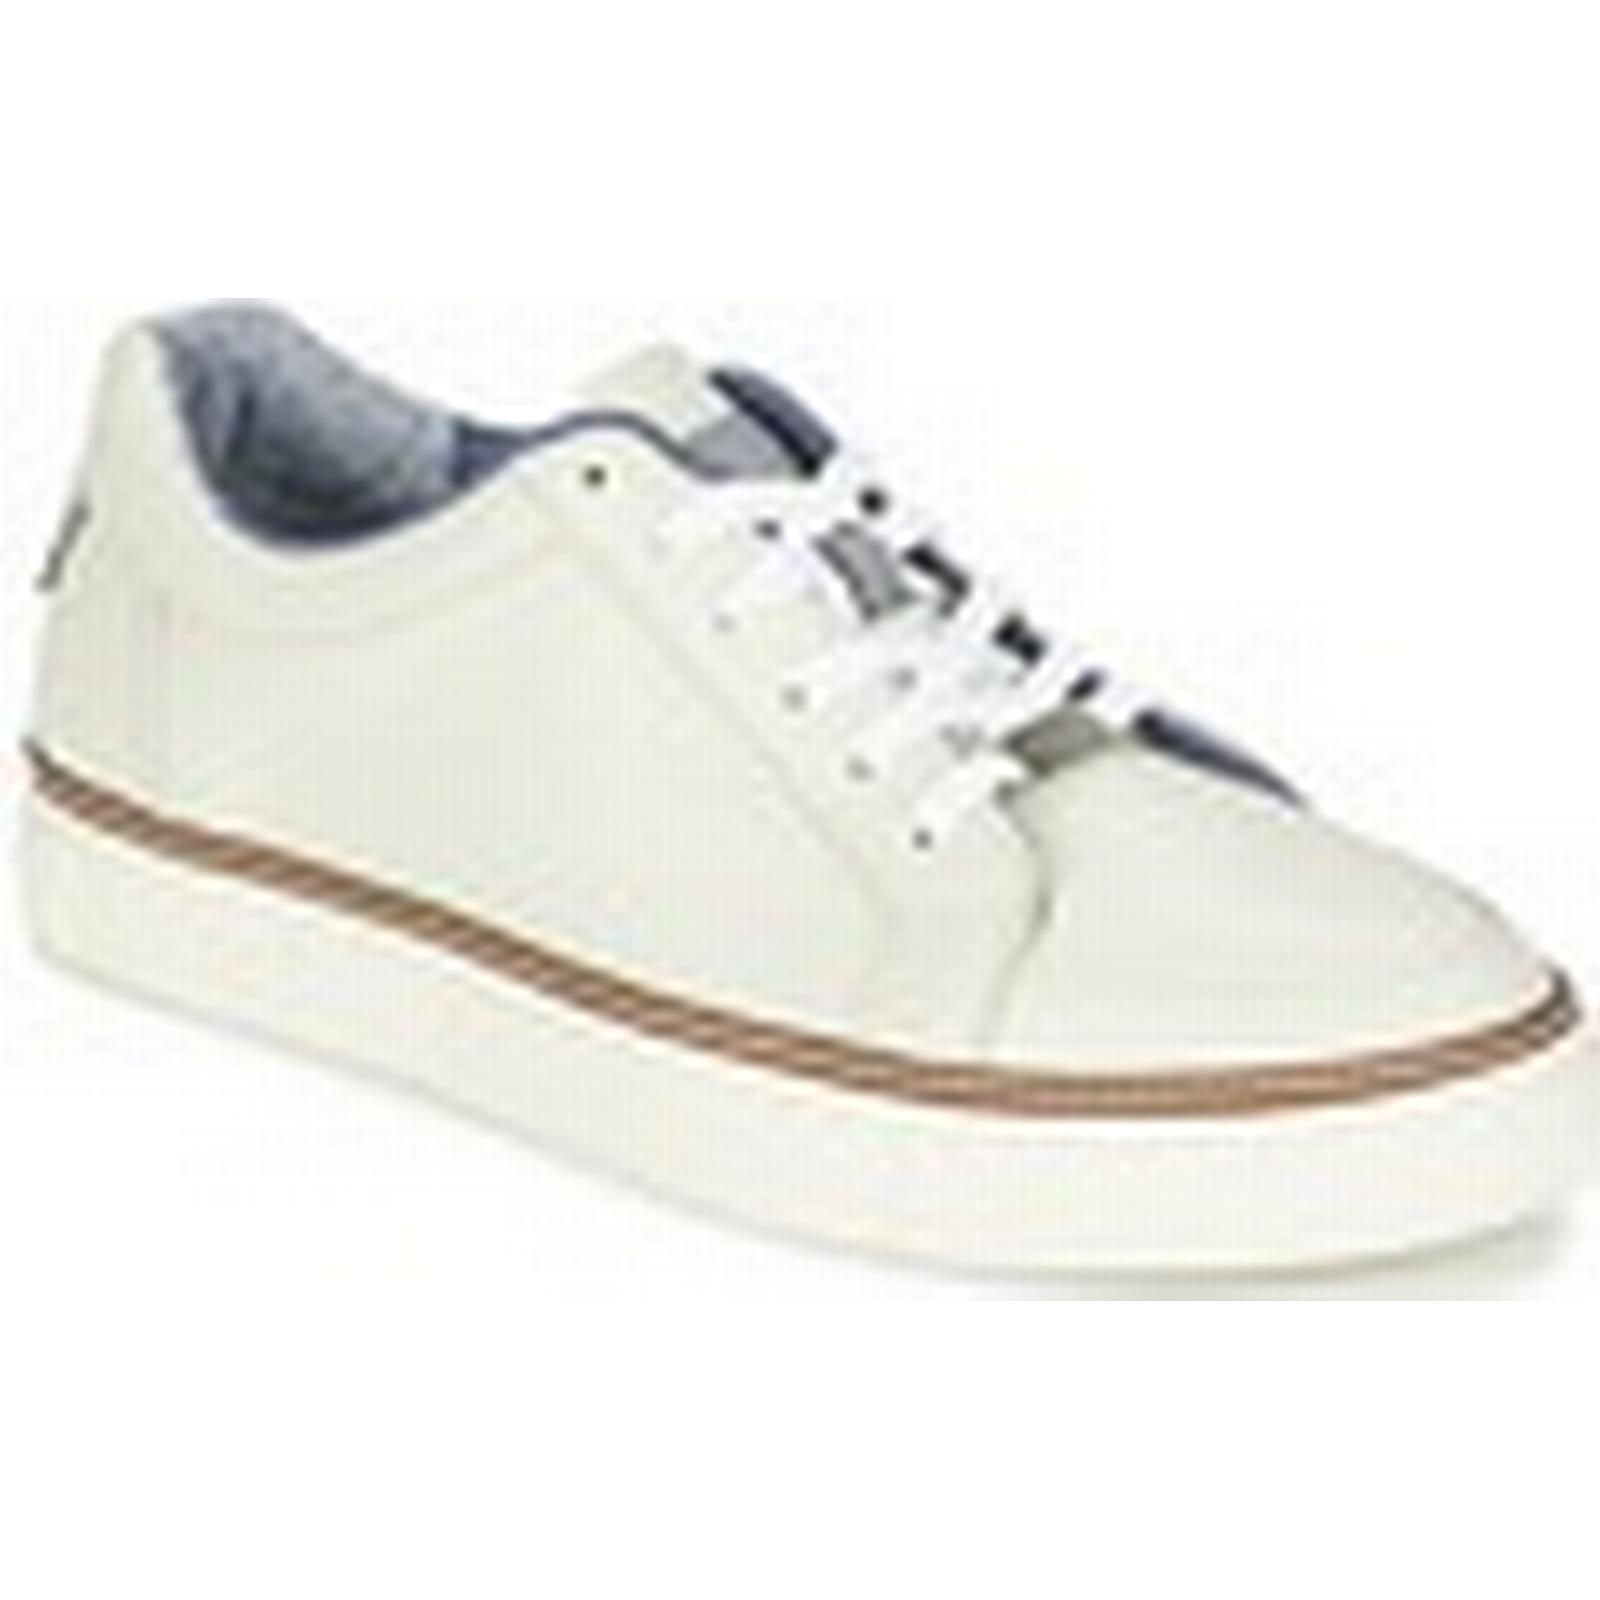 9ffae249c29e Ted Baker ROUU men  x27 s men  x27 s men  x27 s Shoes (Trainers) in ...